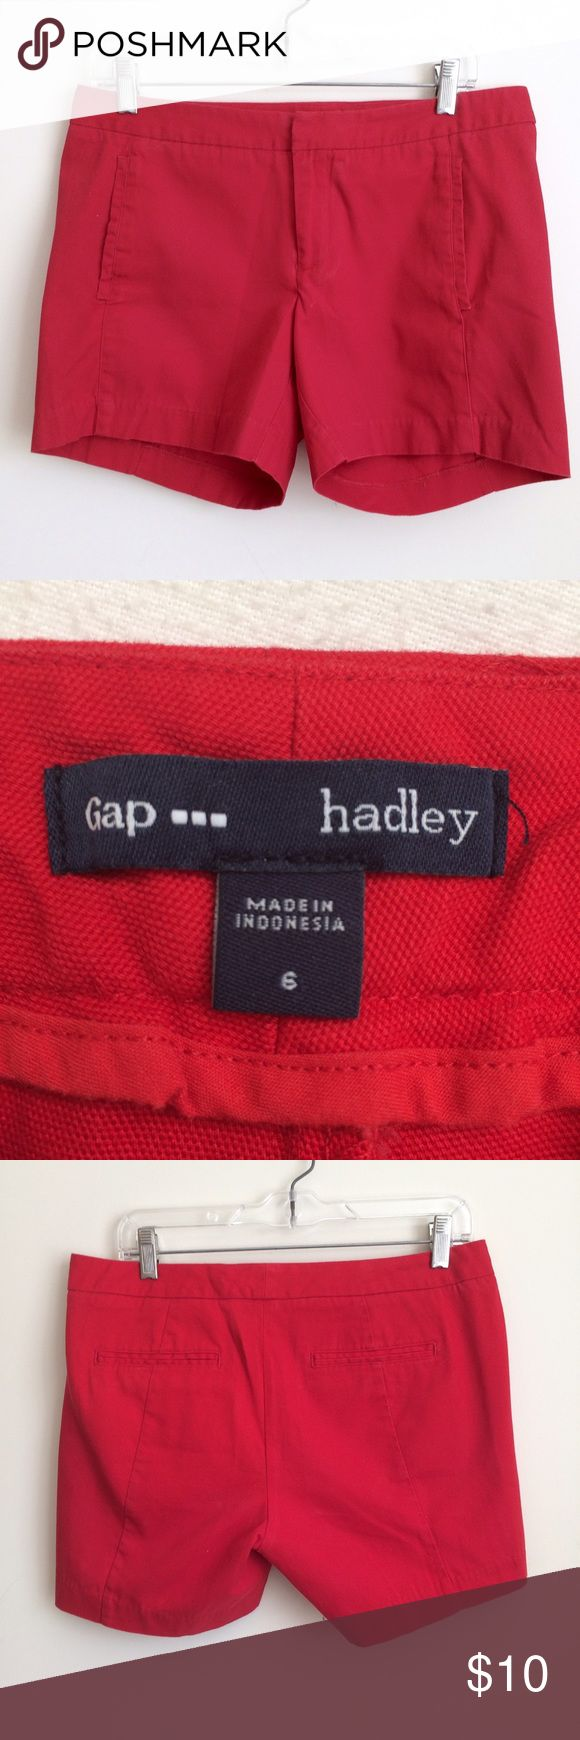 Gap Outlet Red Hadley Flat Front Shorts Size 6 These true red shorts have a low rise, belt loops, front slit pockets, back pockets, a hidden hook & eye and zipper fly, and a flat front. They're in excellent condition from a smoke free home.  